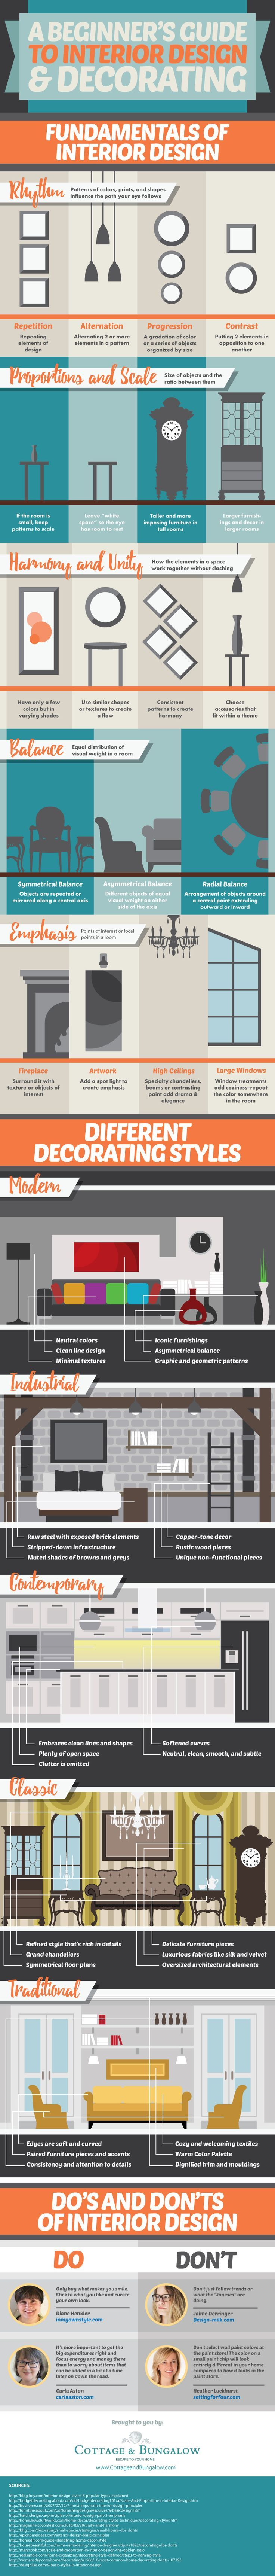 best 25 interior design ideas on pinterest copper decor the beginner s guide to interior design and decorating www settingforfou